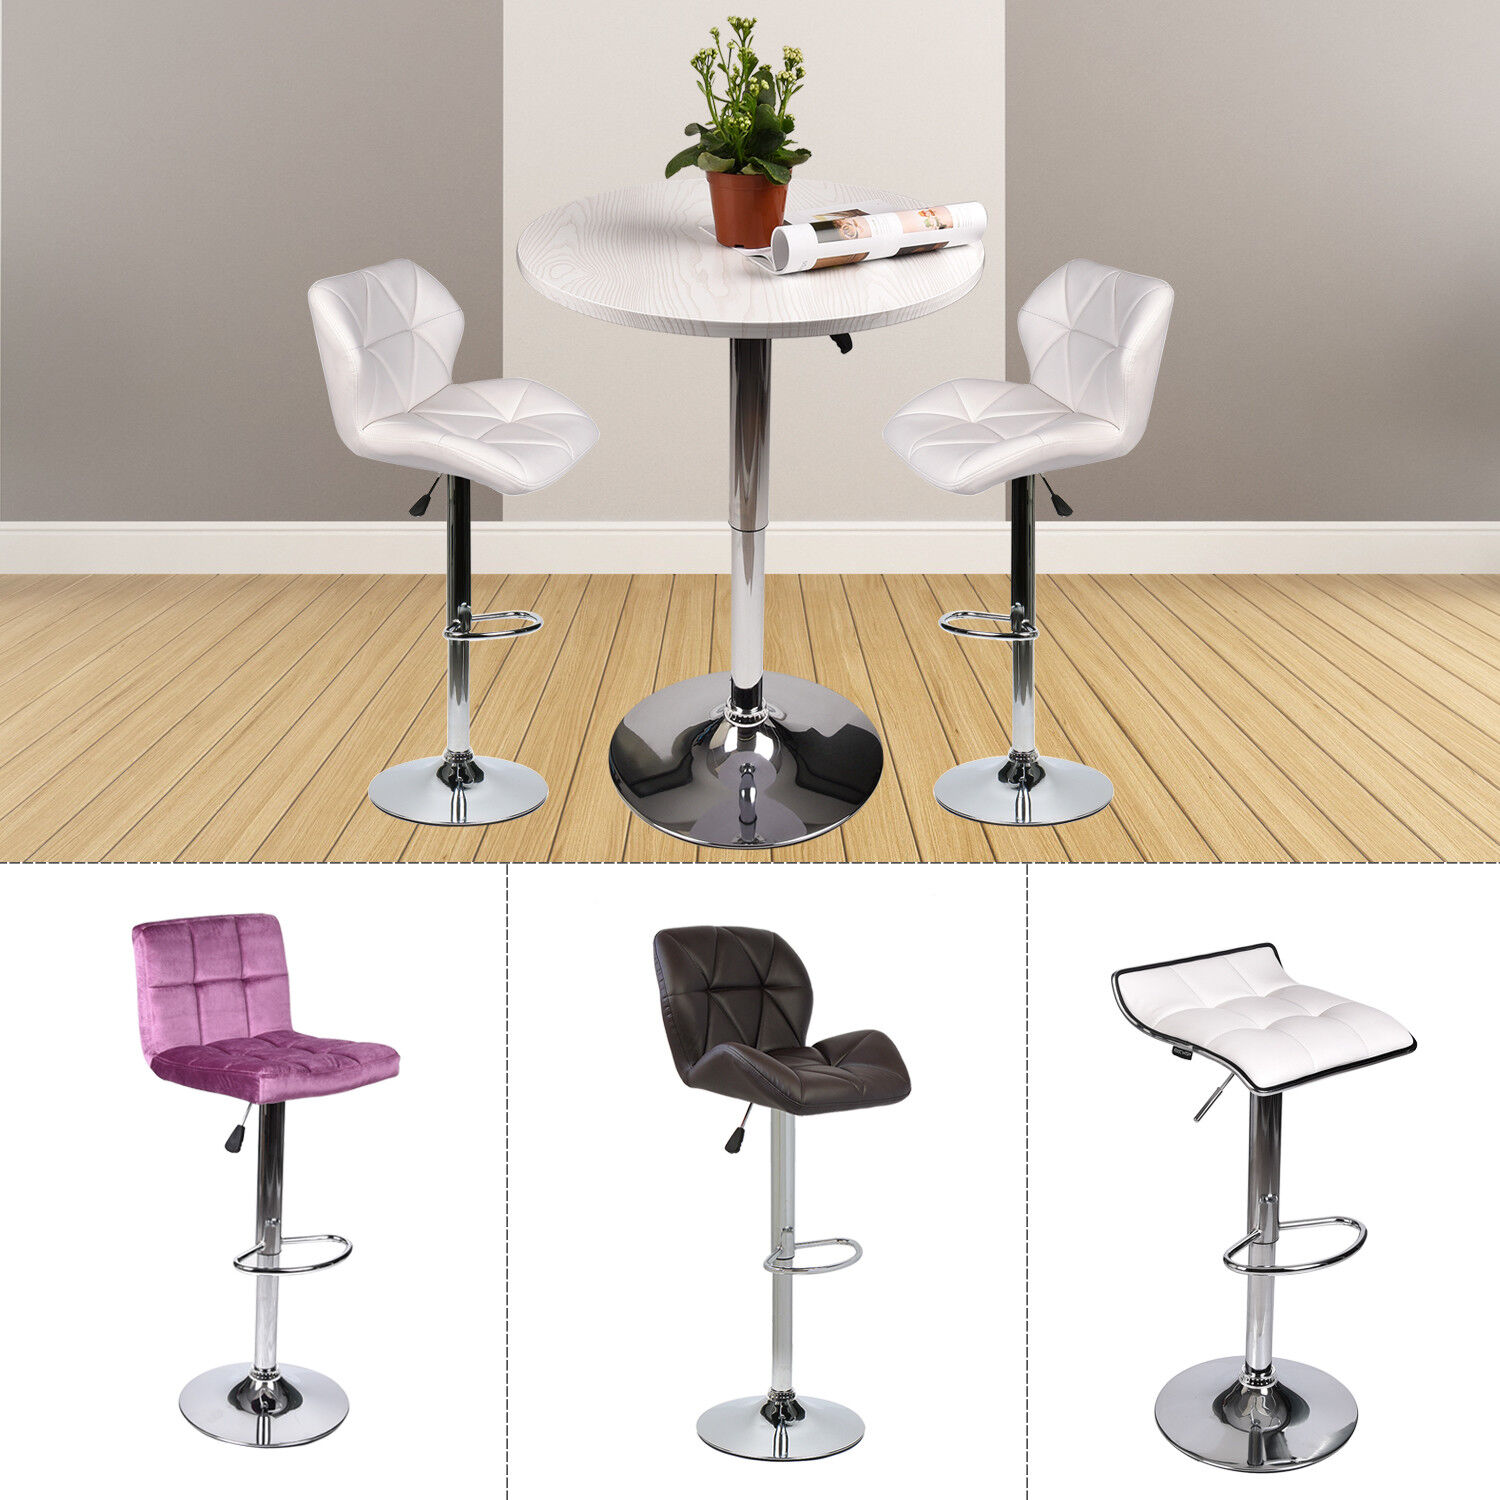 Cool 3 Piece Pub Table Set Bar Stools Adjustable Dining Chair Counter Height Kitchen Ocoug Best Dining Table And Chair Ideas Images Ocougorg